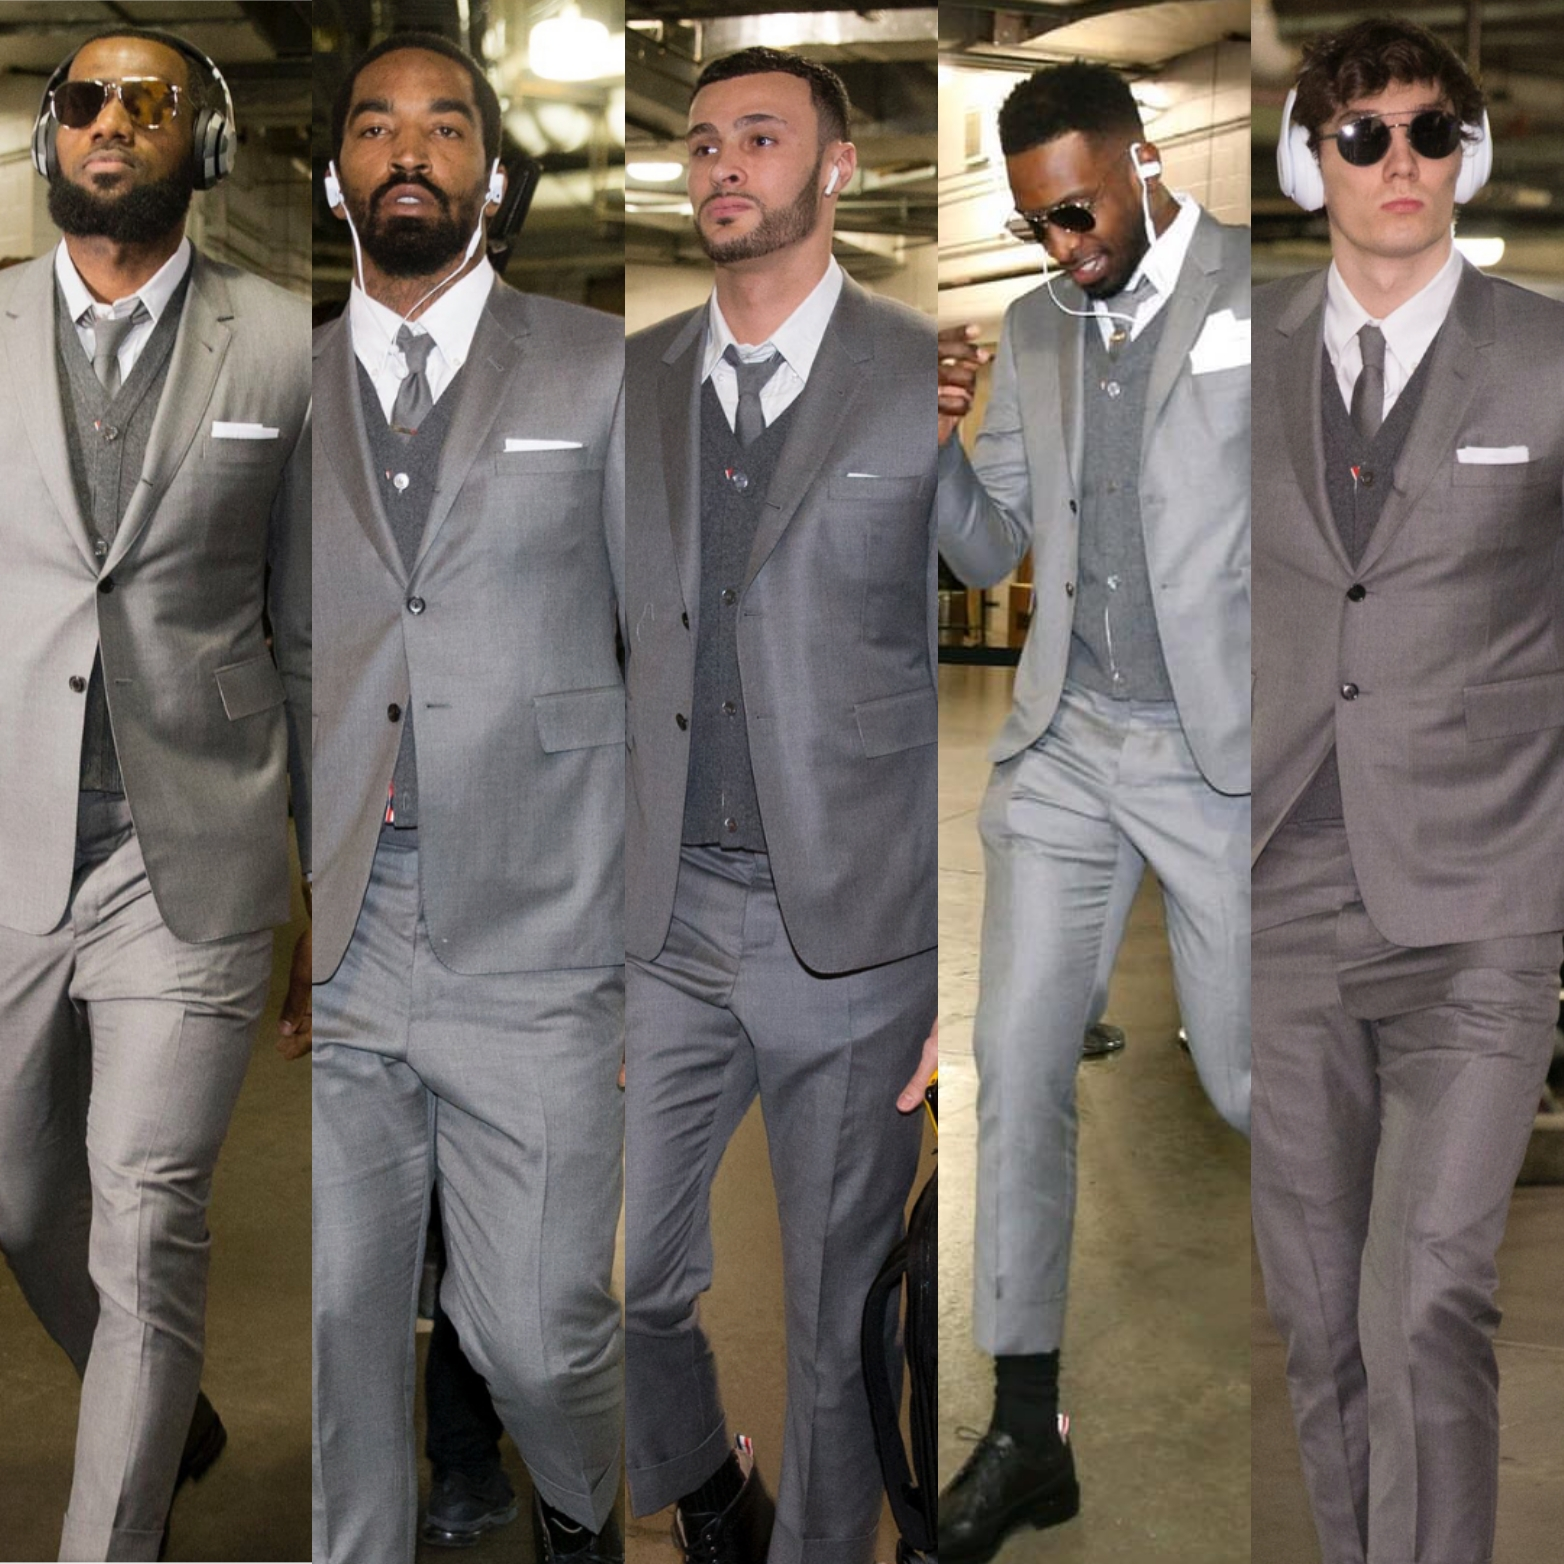 Lebron James & Cavs Teammates Wear Matching Thom Browne Suits For Game 3 Of The 2018 NBA Playoffs RD 1